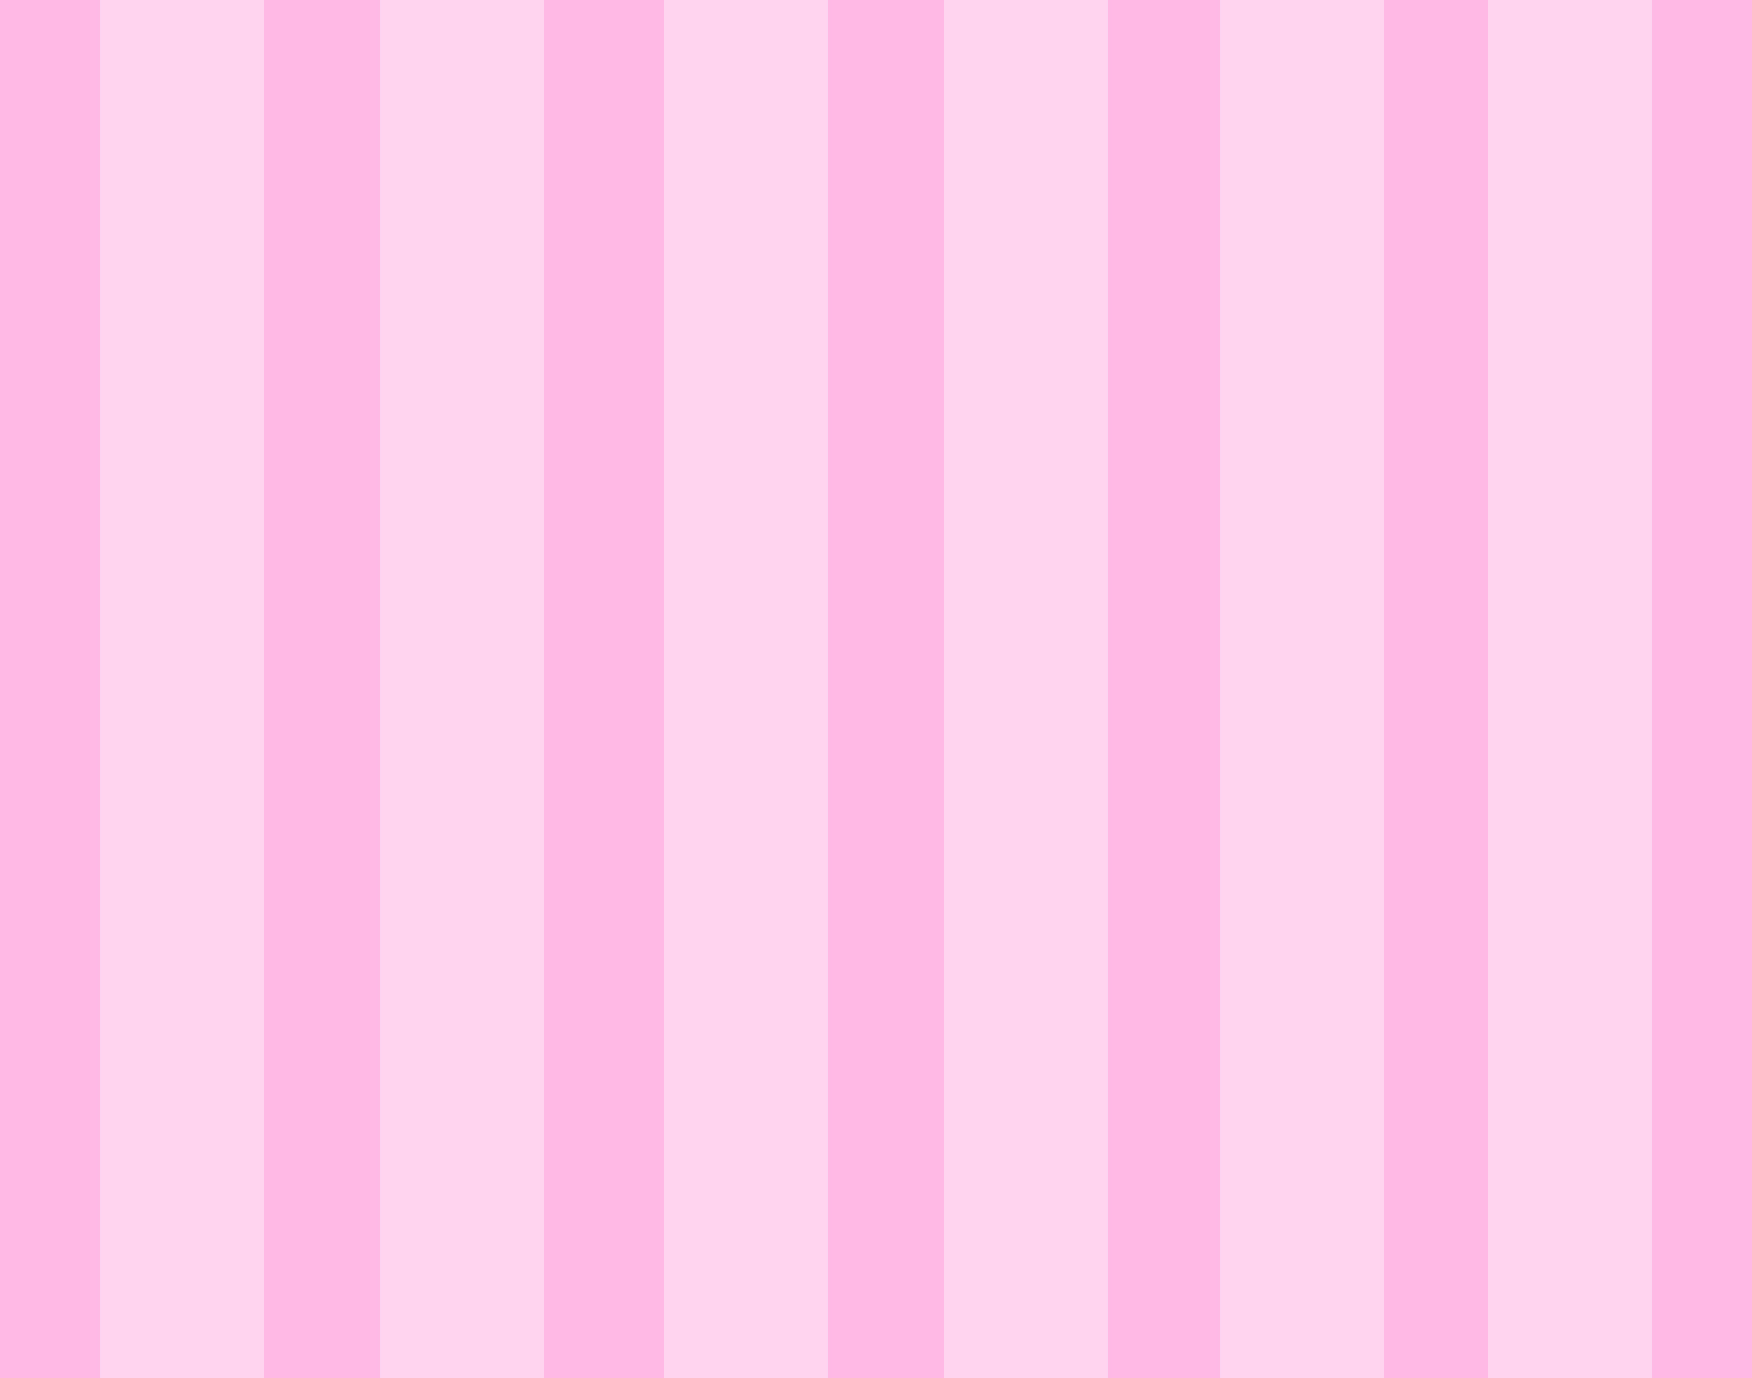 Pink Backgrounds amp Patterns  Background Labs